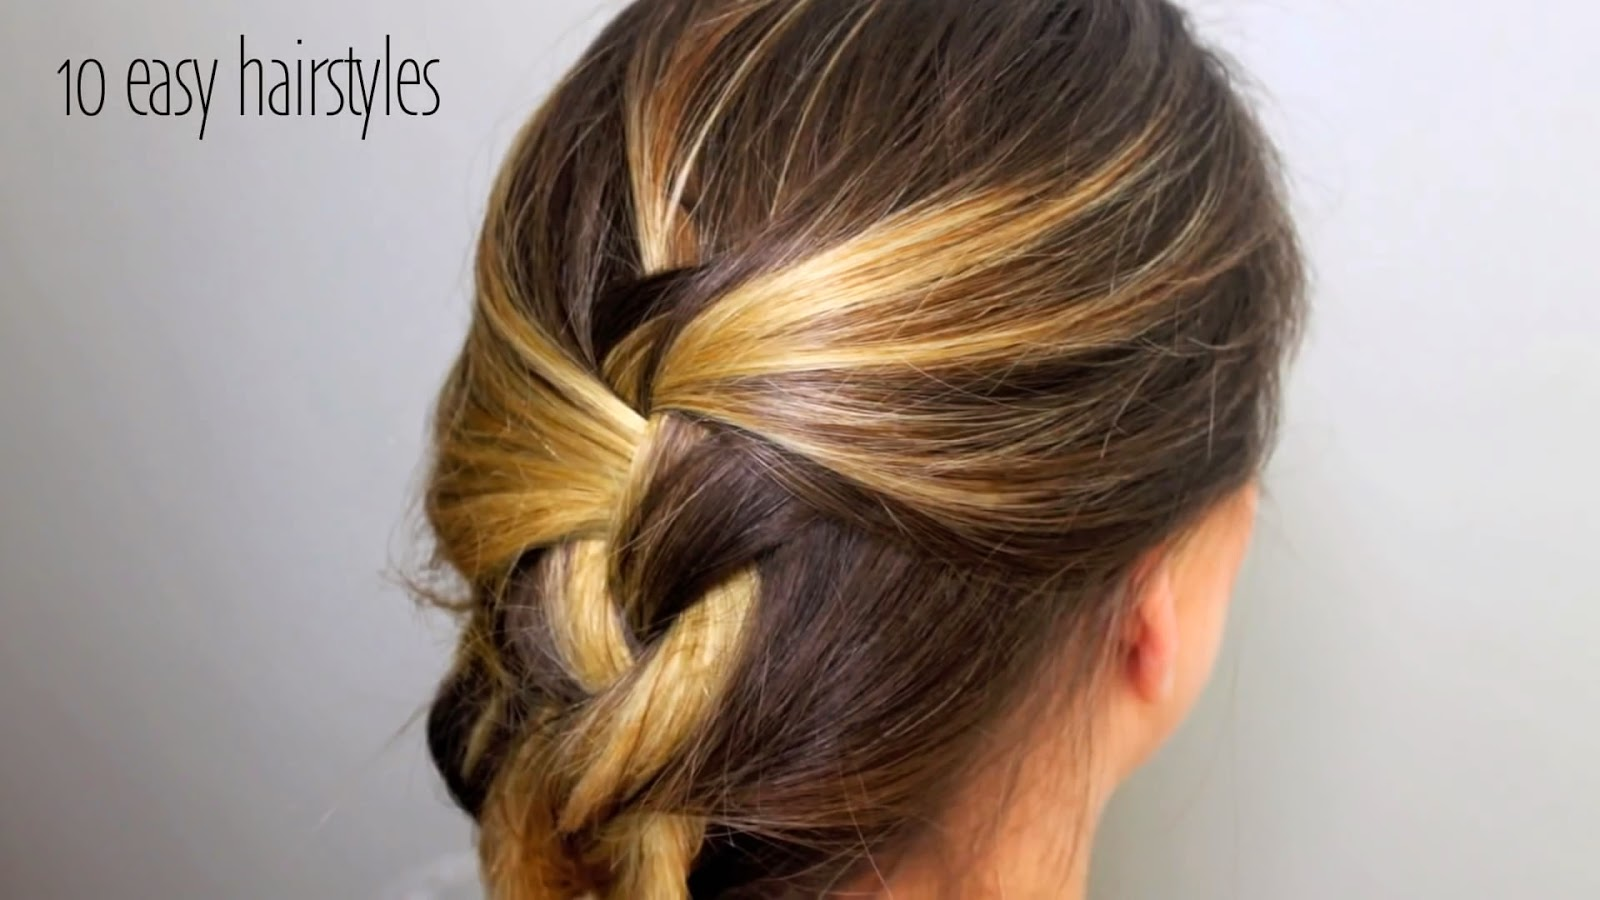 For School In Pakistan Picture Ideas With Hairstyles For Long Hair ...